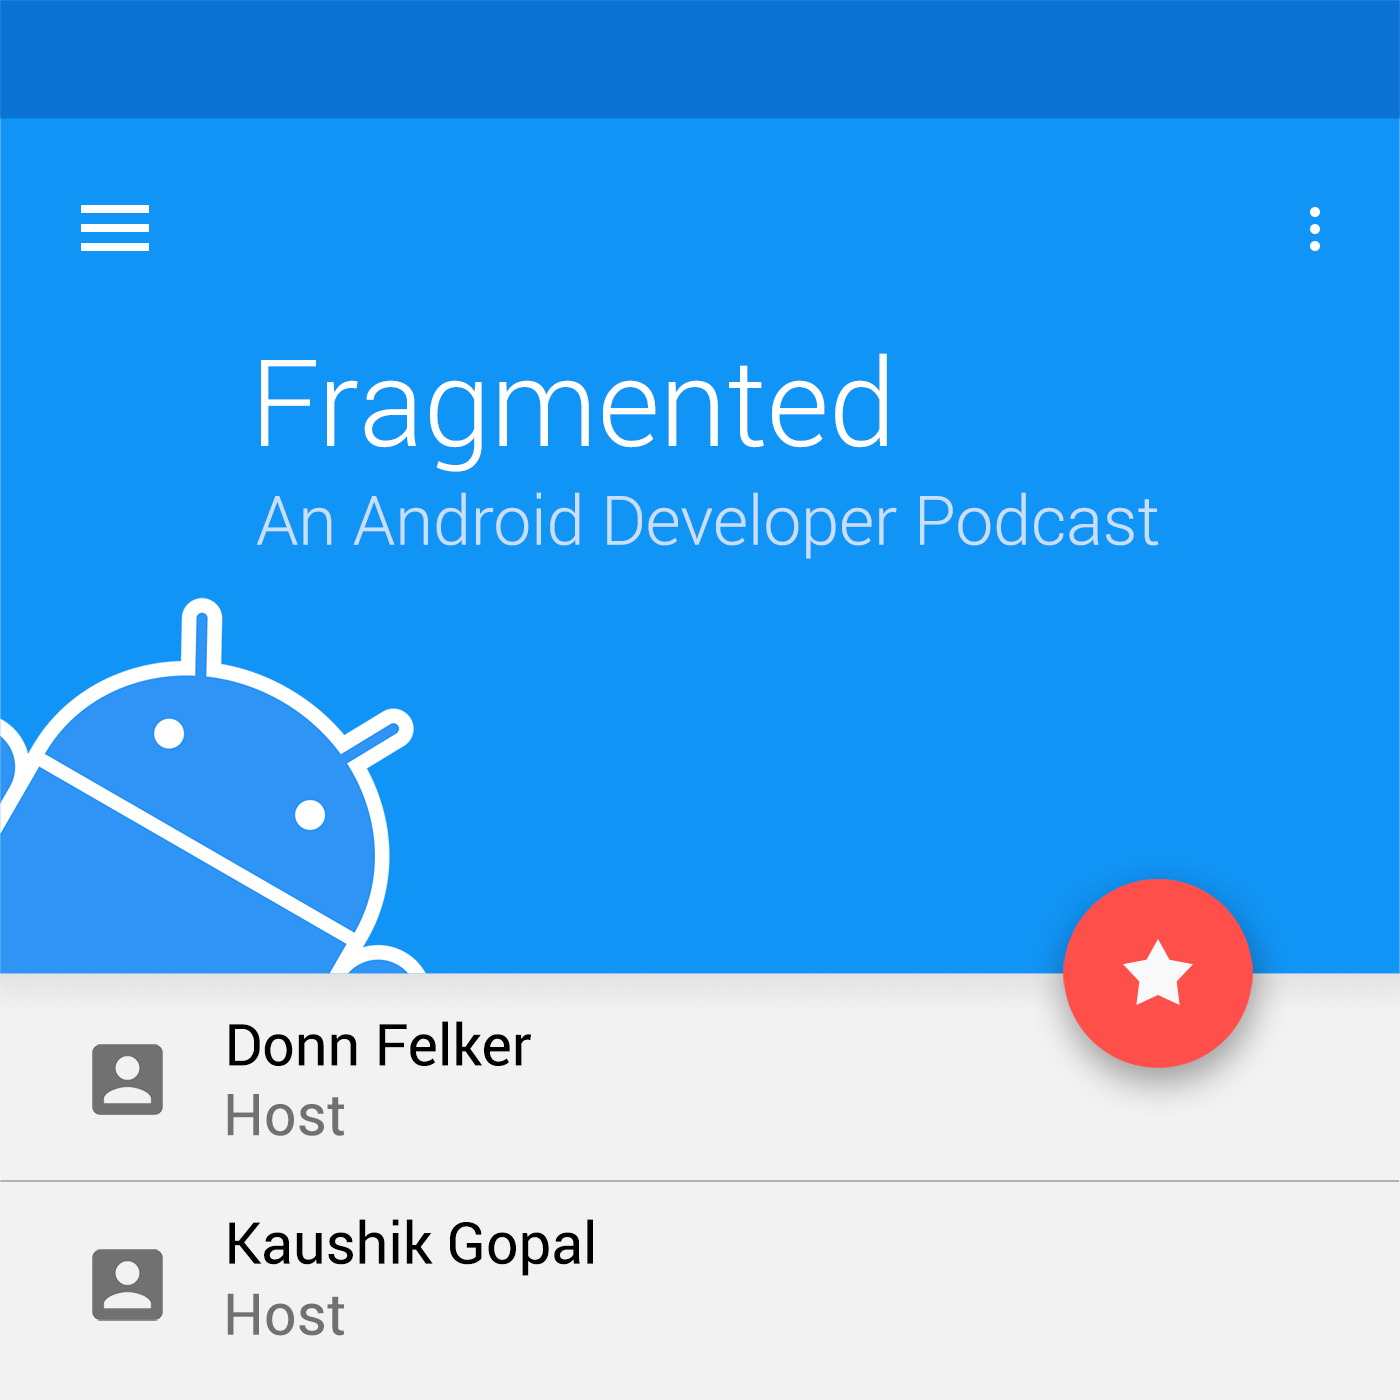 fragmented podcast software engineering podcast